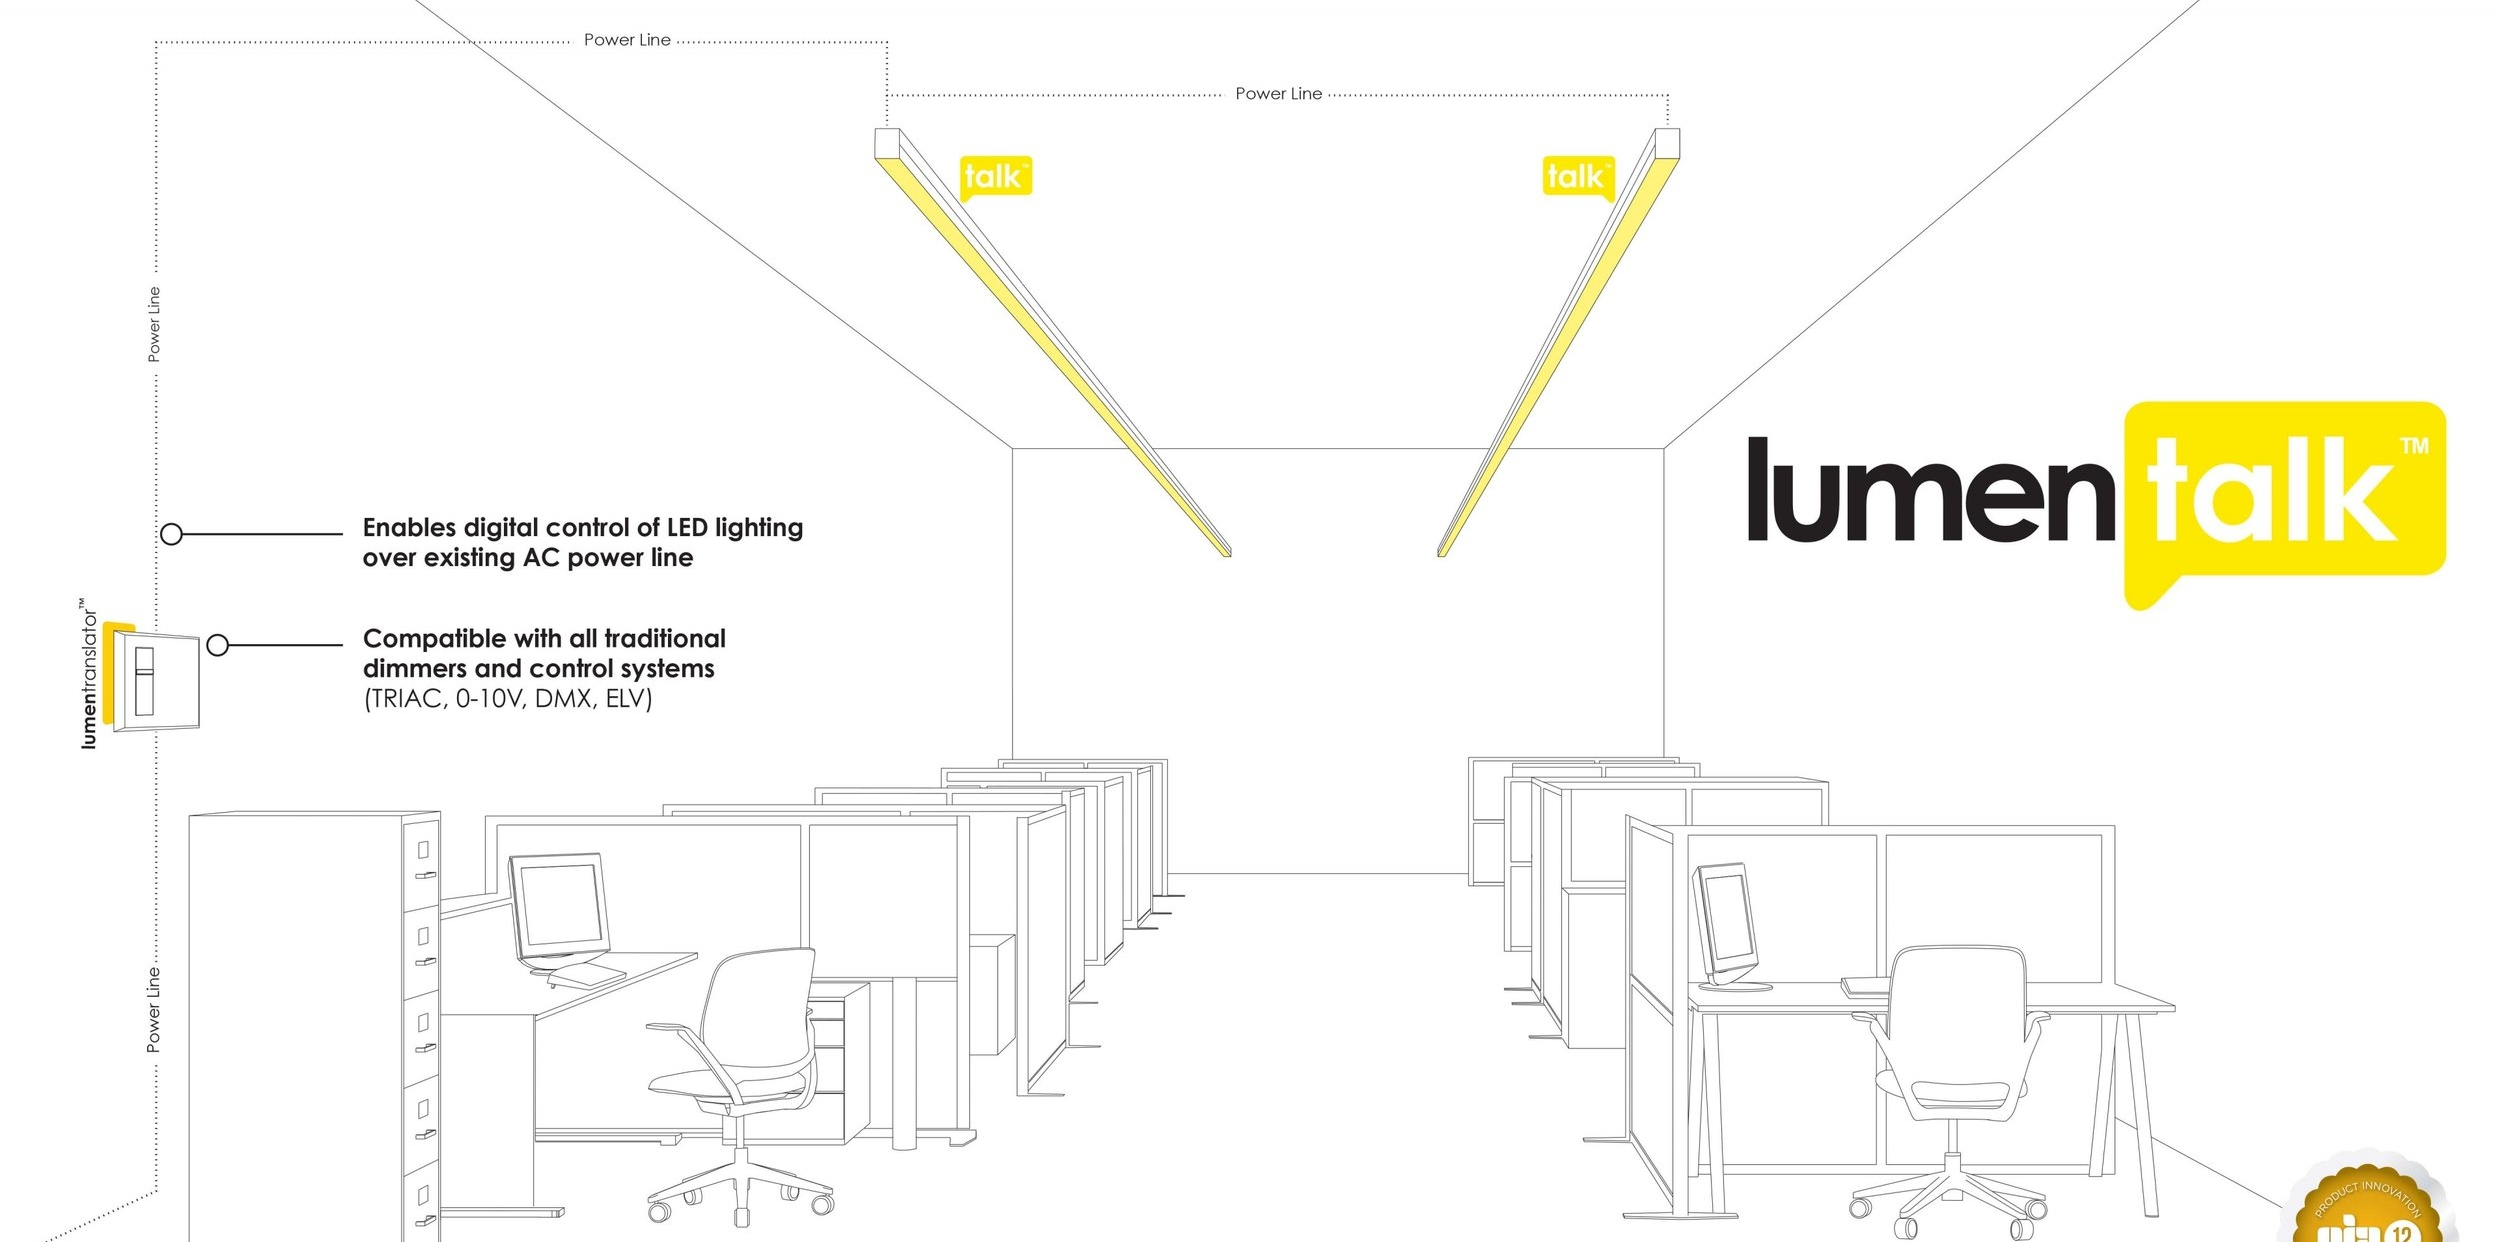 Luemnpulse offer a unique method of embedding lighting control signals in mains wiring, ideal for heritage buildings, floodlighting, street lighting etc, any project where changing wiring is difficult or expensive.